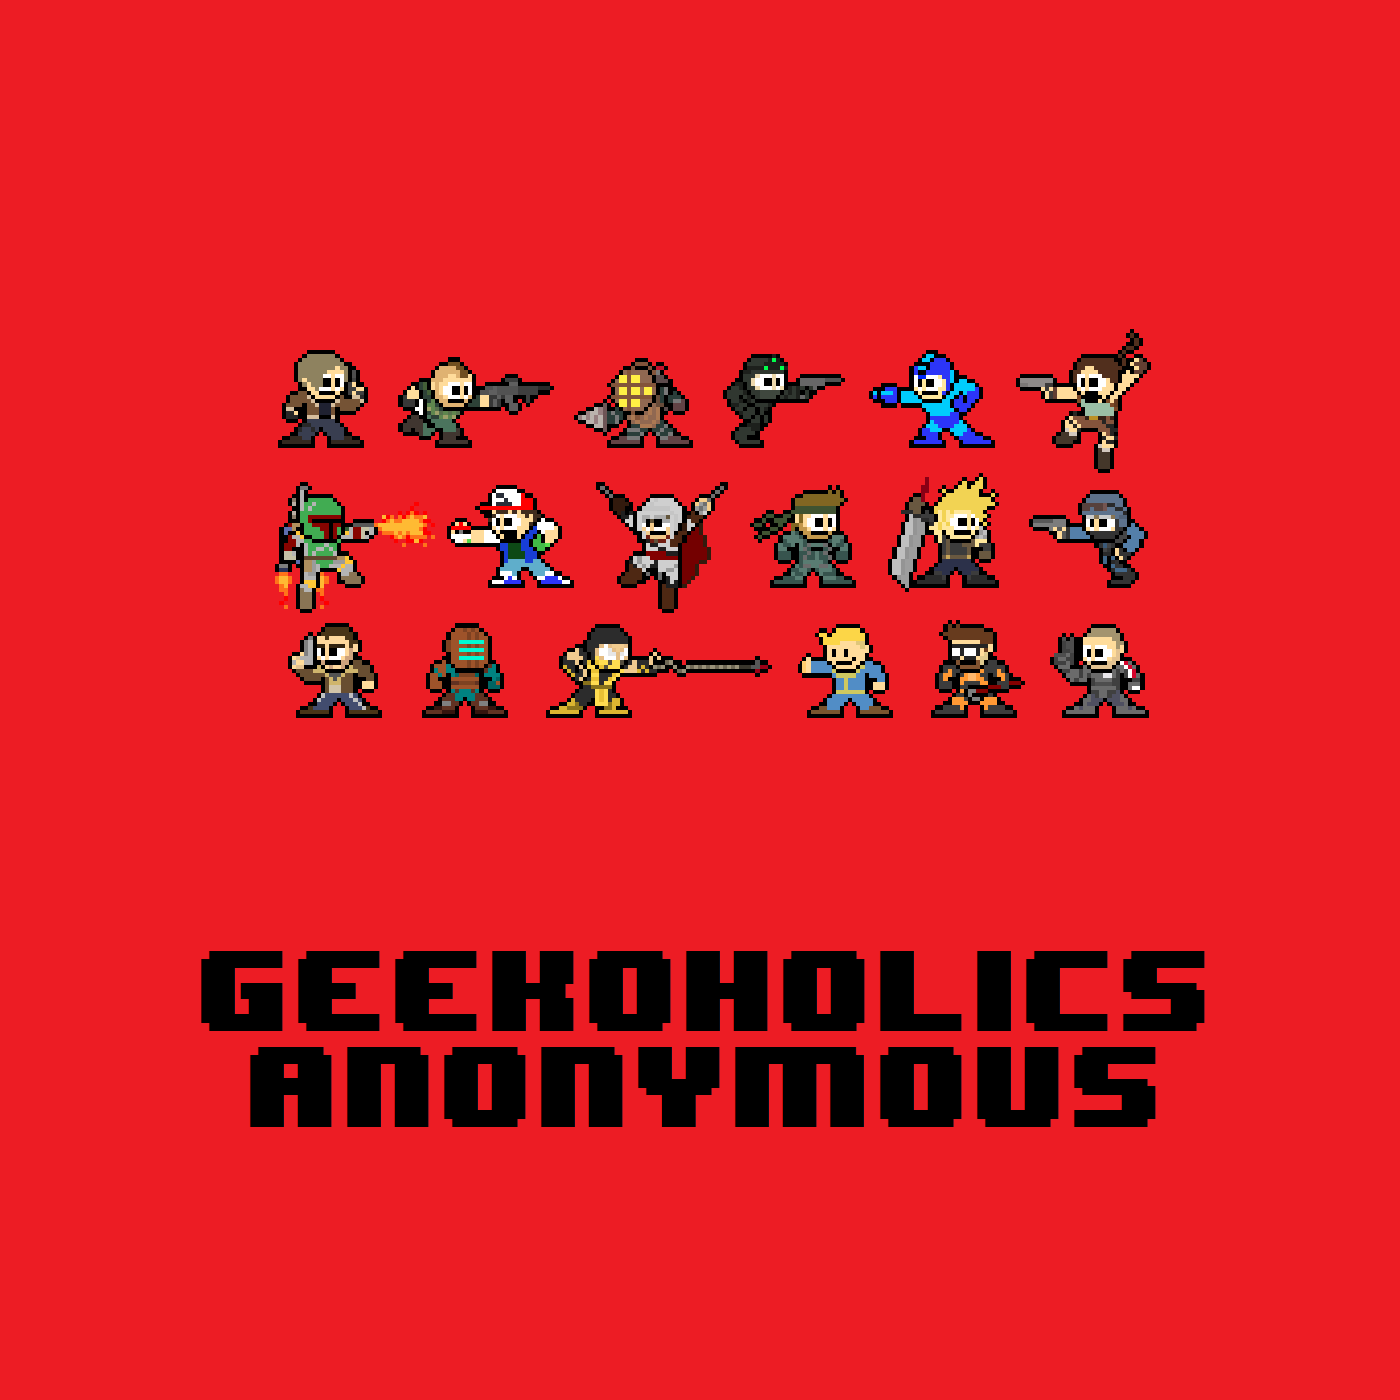 Loop Hero, Half Life Alyx, Apex Legends, Fortnite, and more - Geekoholics Anonymous Podcast 297 show art